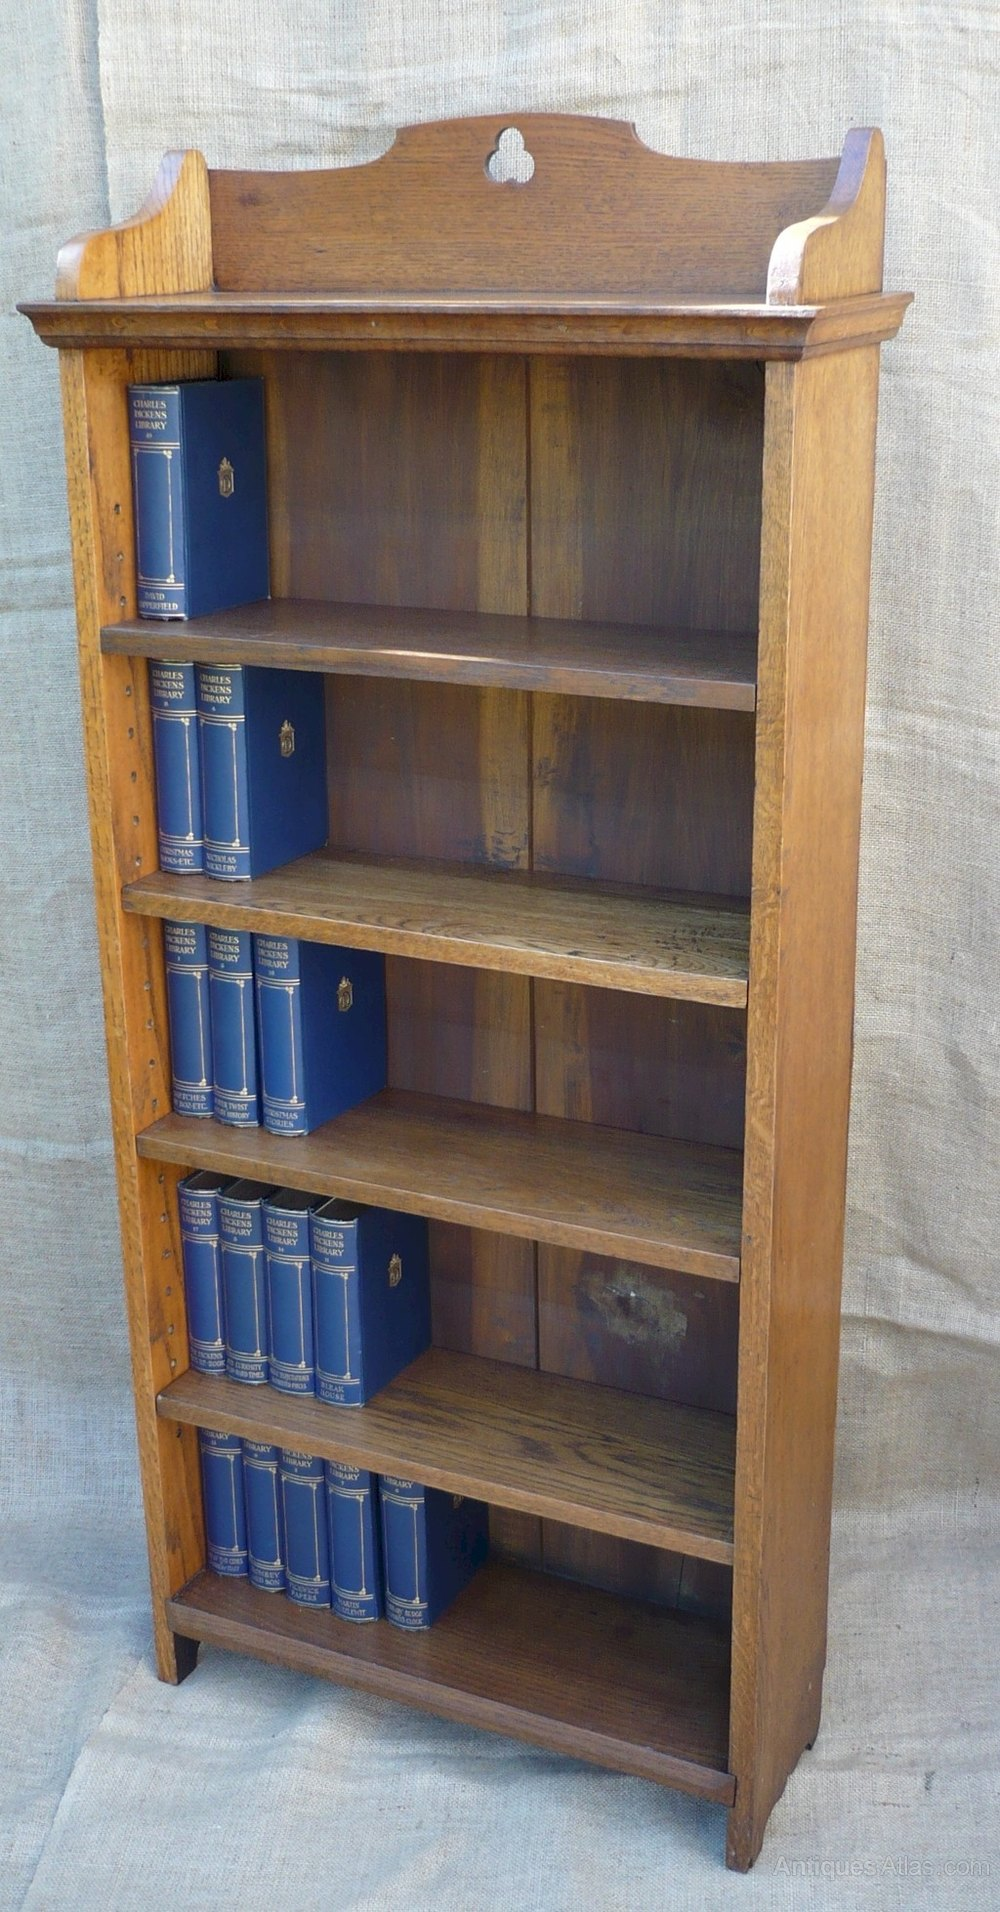 Tall narrow arts and crafts bookcase antiques atlas for Arts and crafts bookshelf